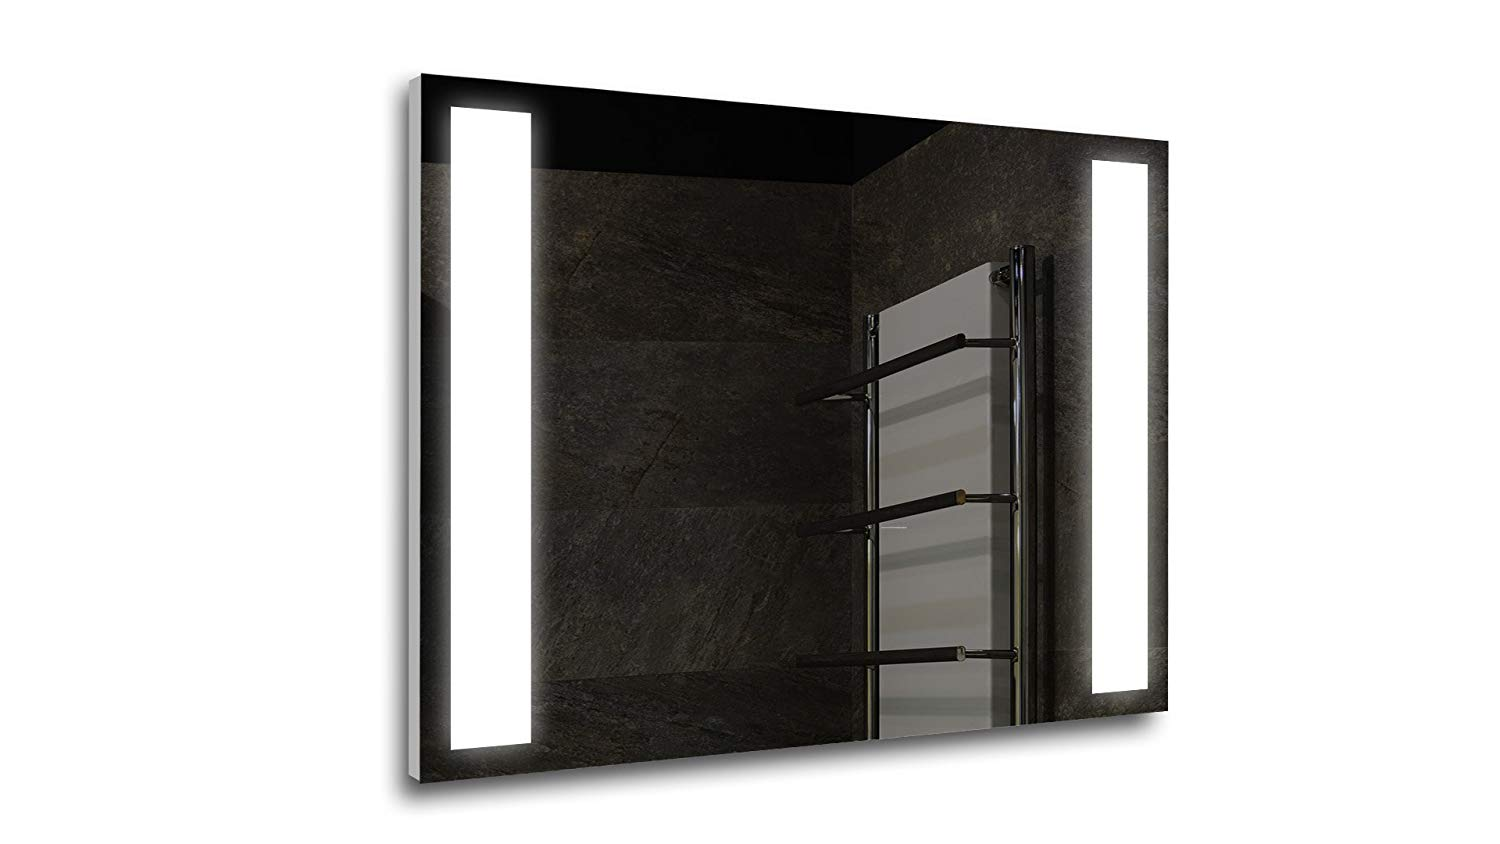 Tilebay LLC Cazzo Led Lighted Mirror| Bathroom Mirror| Led Make-up Mirror| 3 Switch Types Available (31x23, Remote Control)